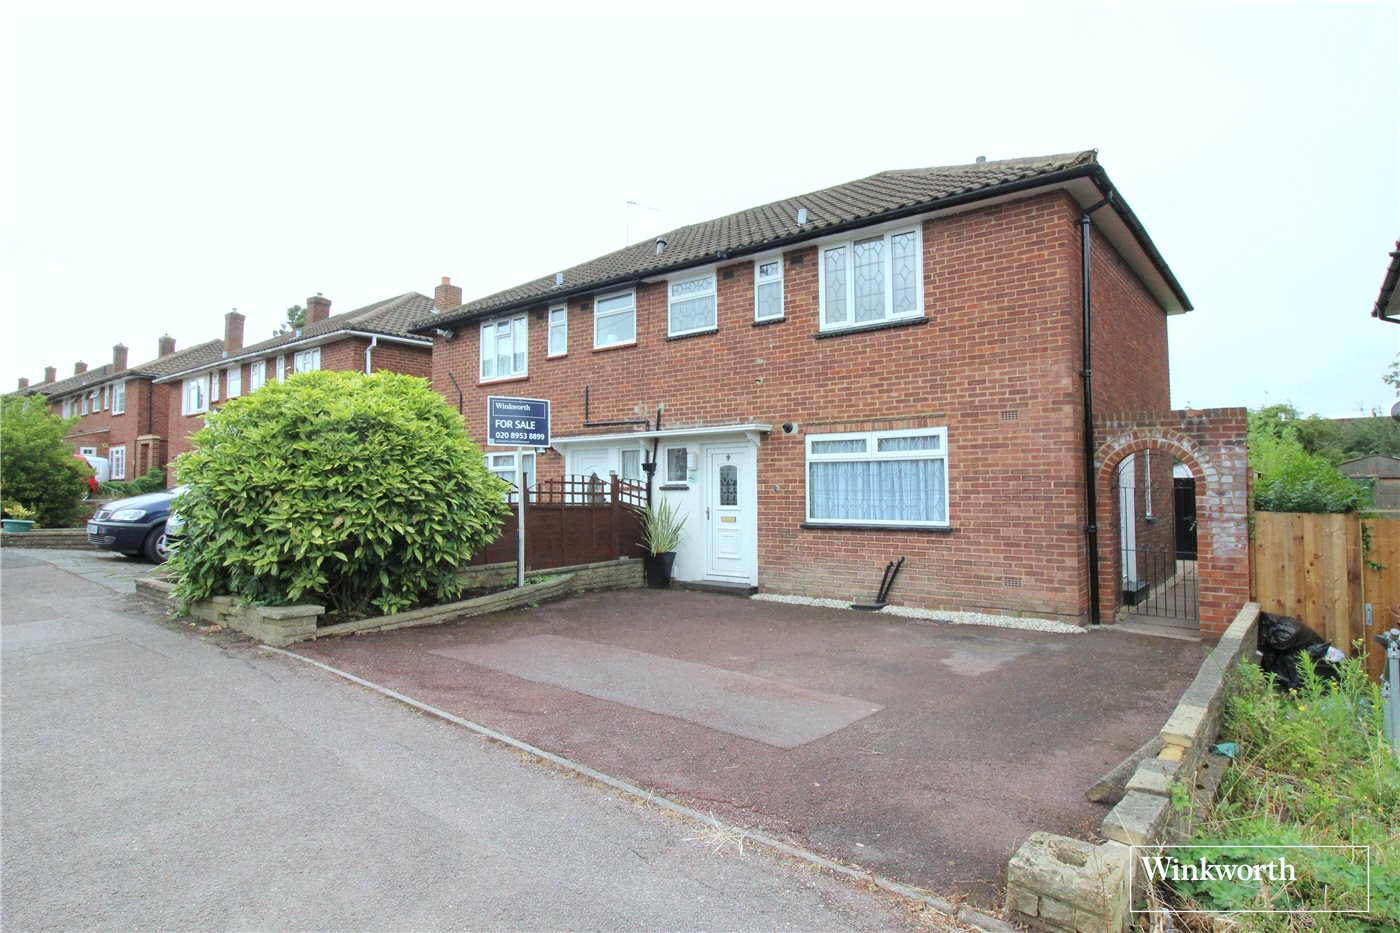 3 Bedrooms House for sale in Alban Crescent, Borehamwood, Hertfordshire, WD6